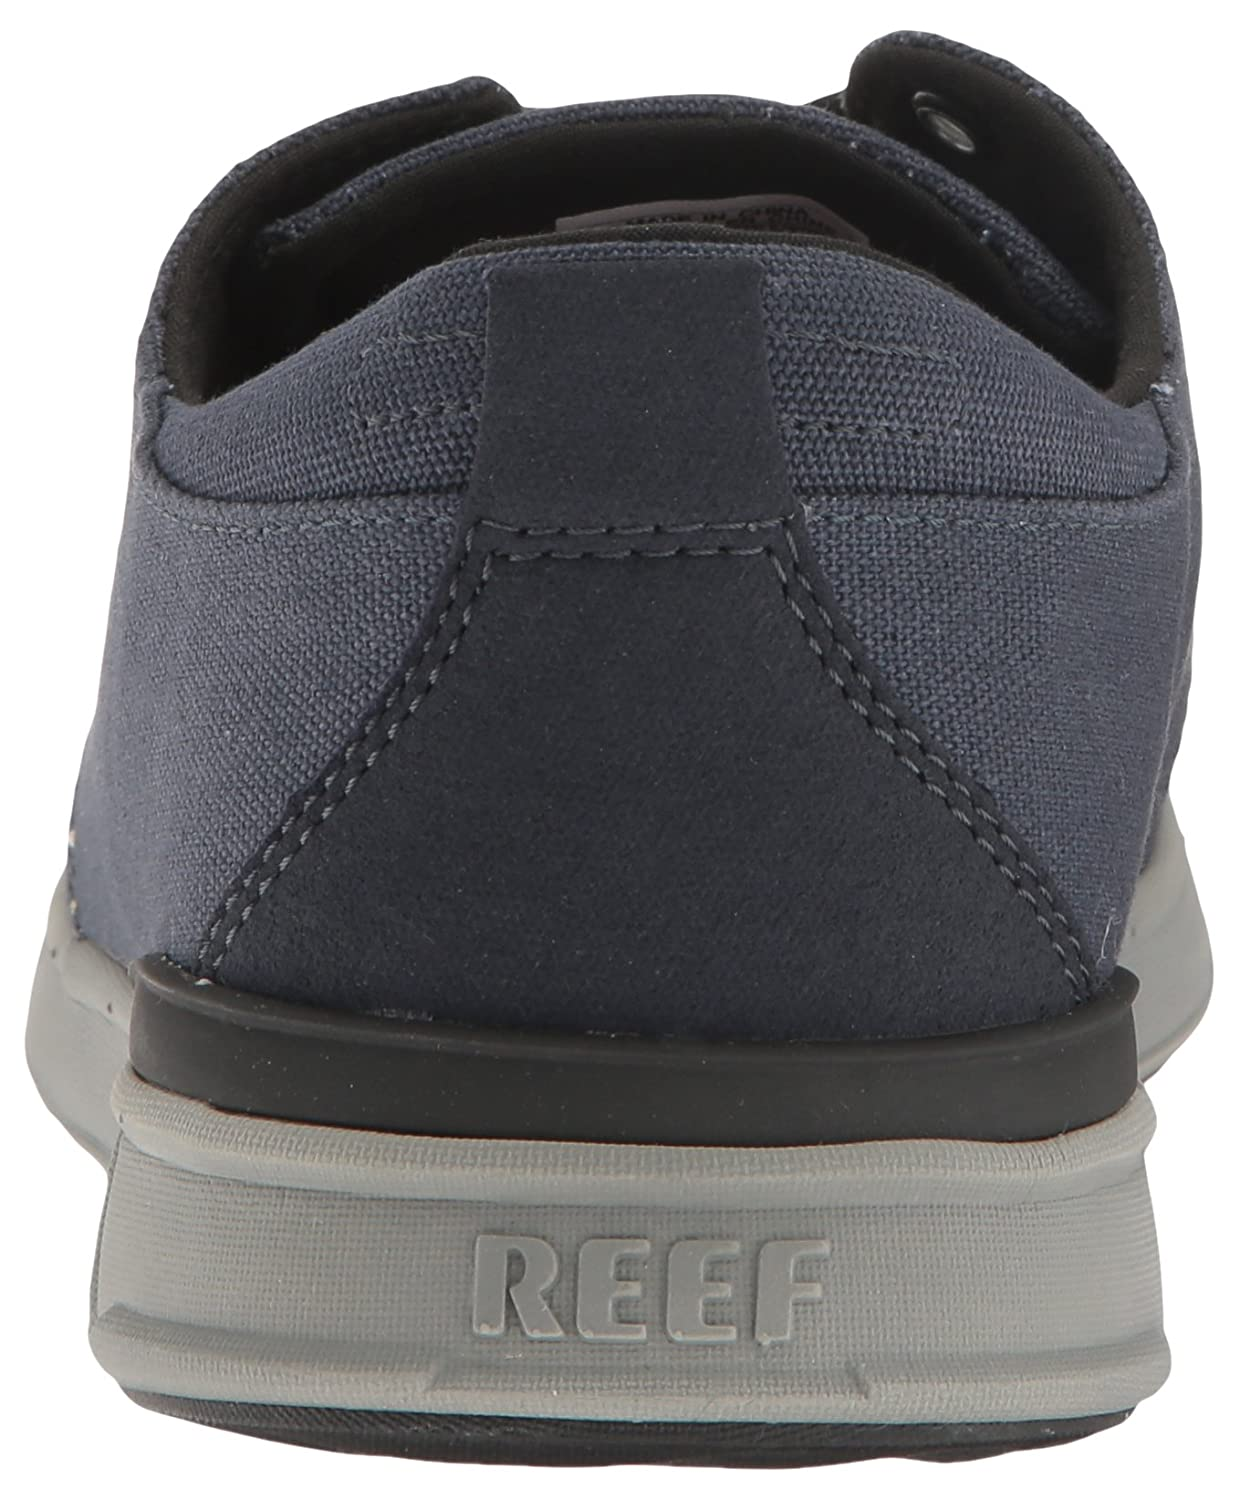 77dfc031f410 Reef Men s Rover Low Fashion Sneaker Black  Reef  Amazon.ca  Shoes    Handbags